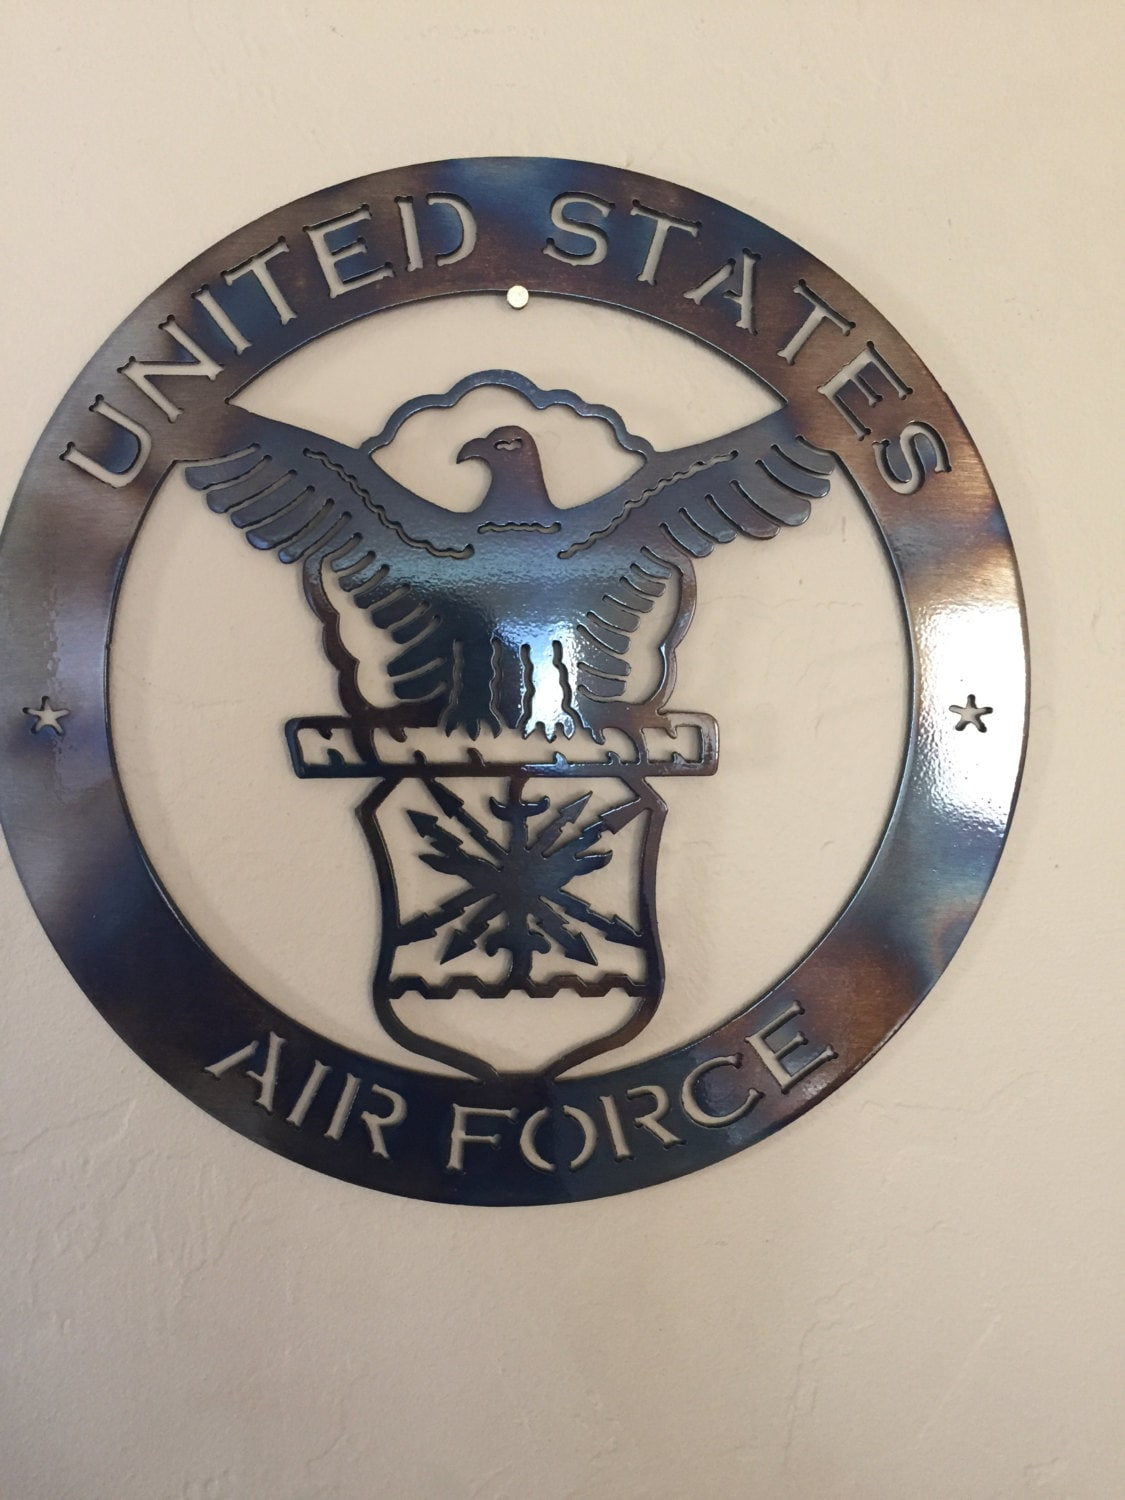 Usaf Wall Decor : Us air force logo metal wall art decor